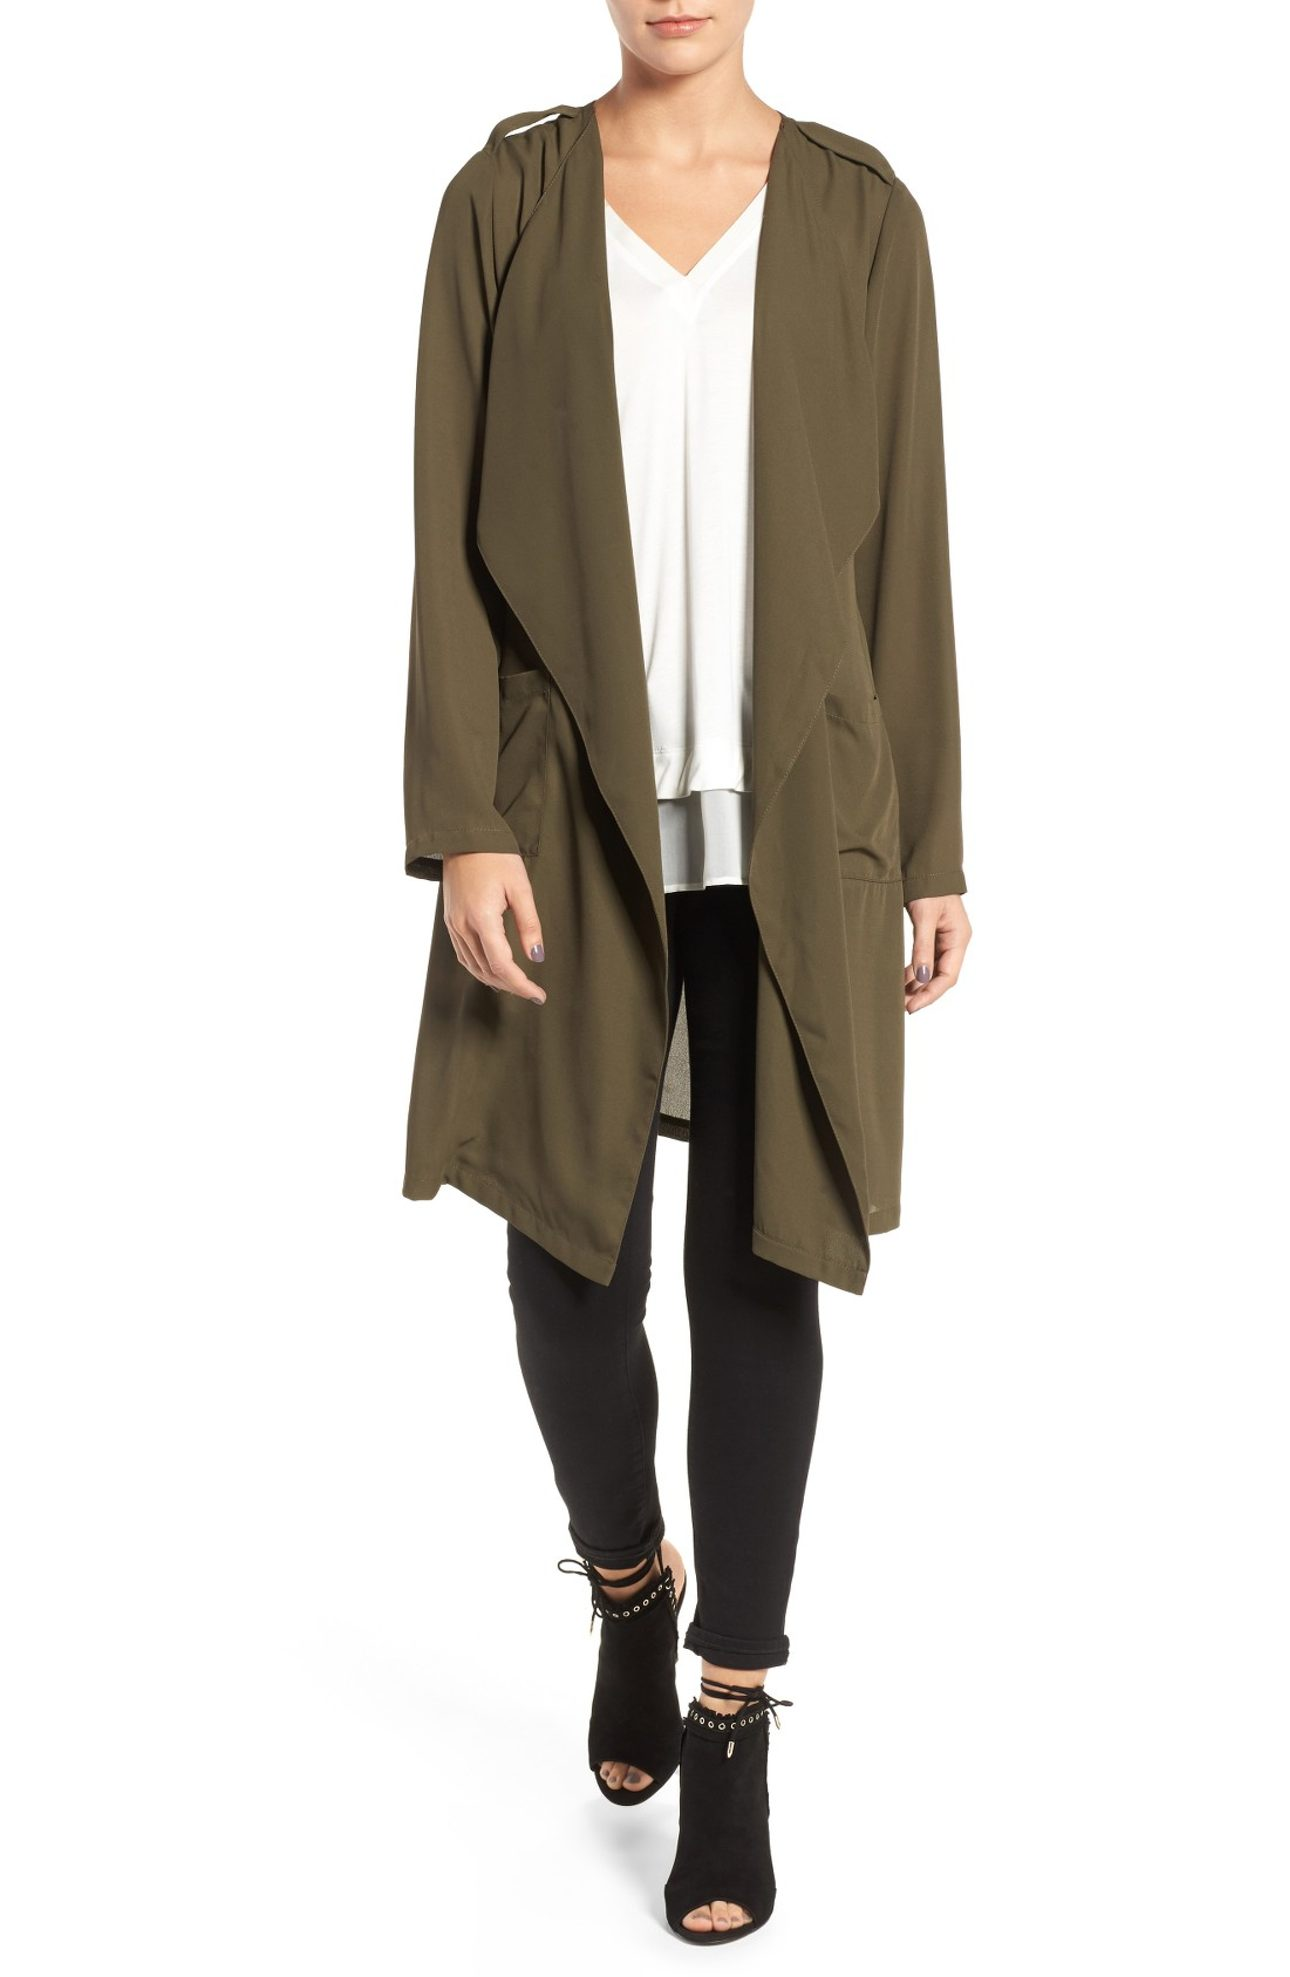 Slouchy Jacket - $89.00 (Image: Nordstrom)